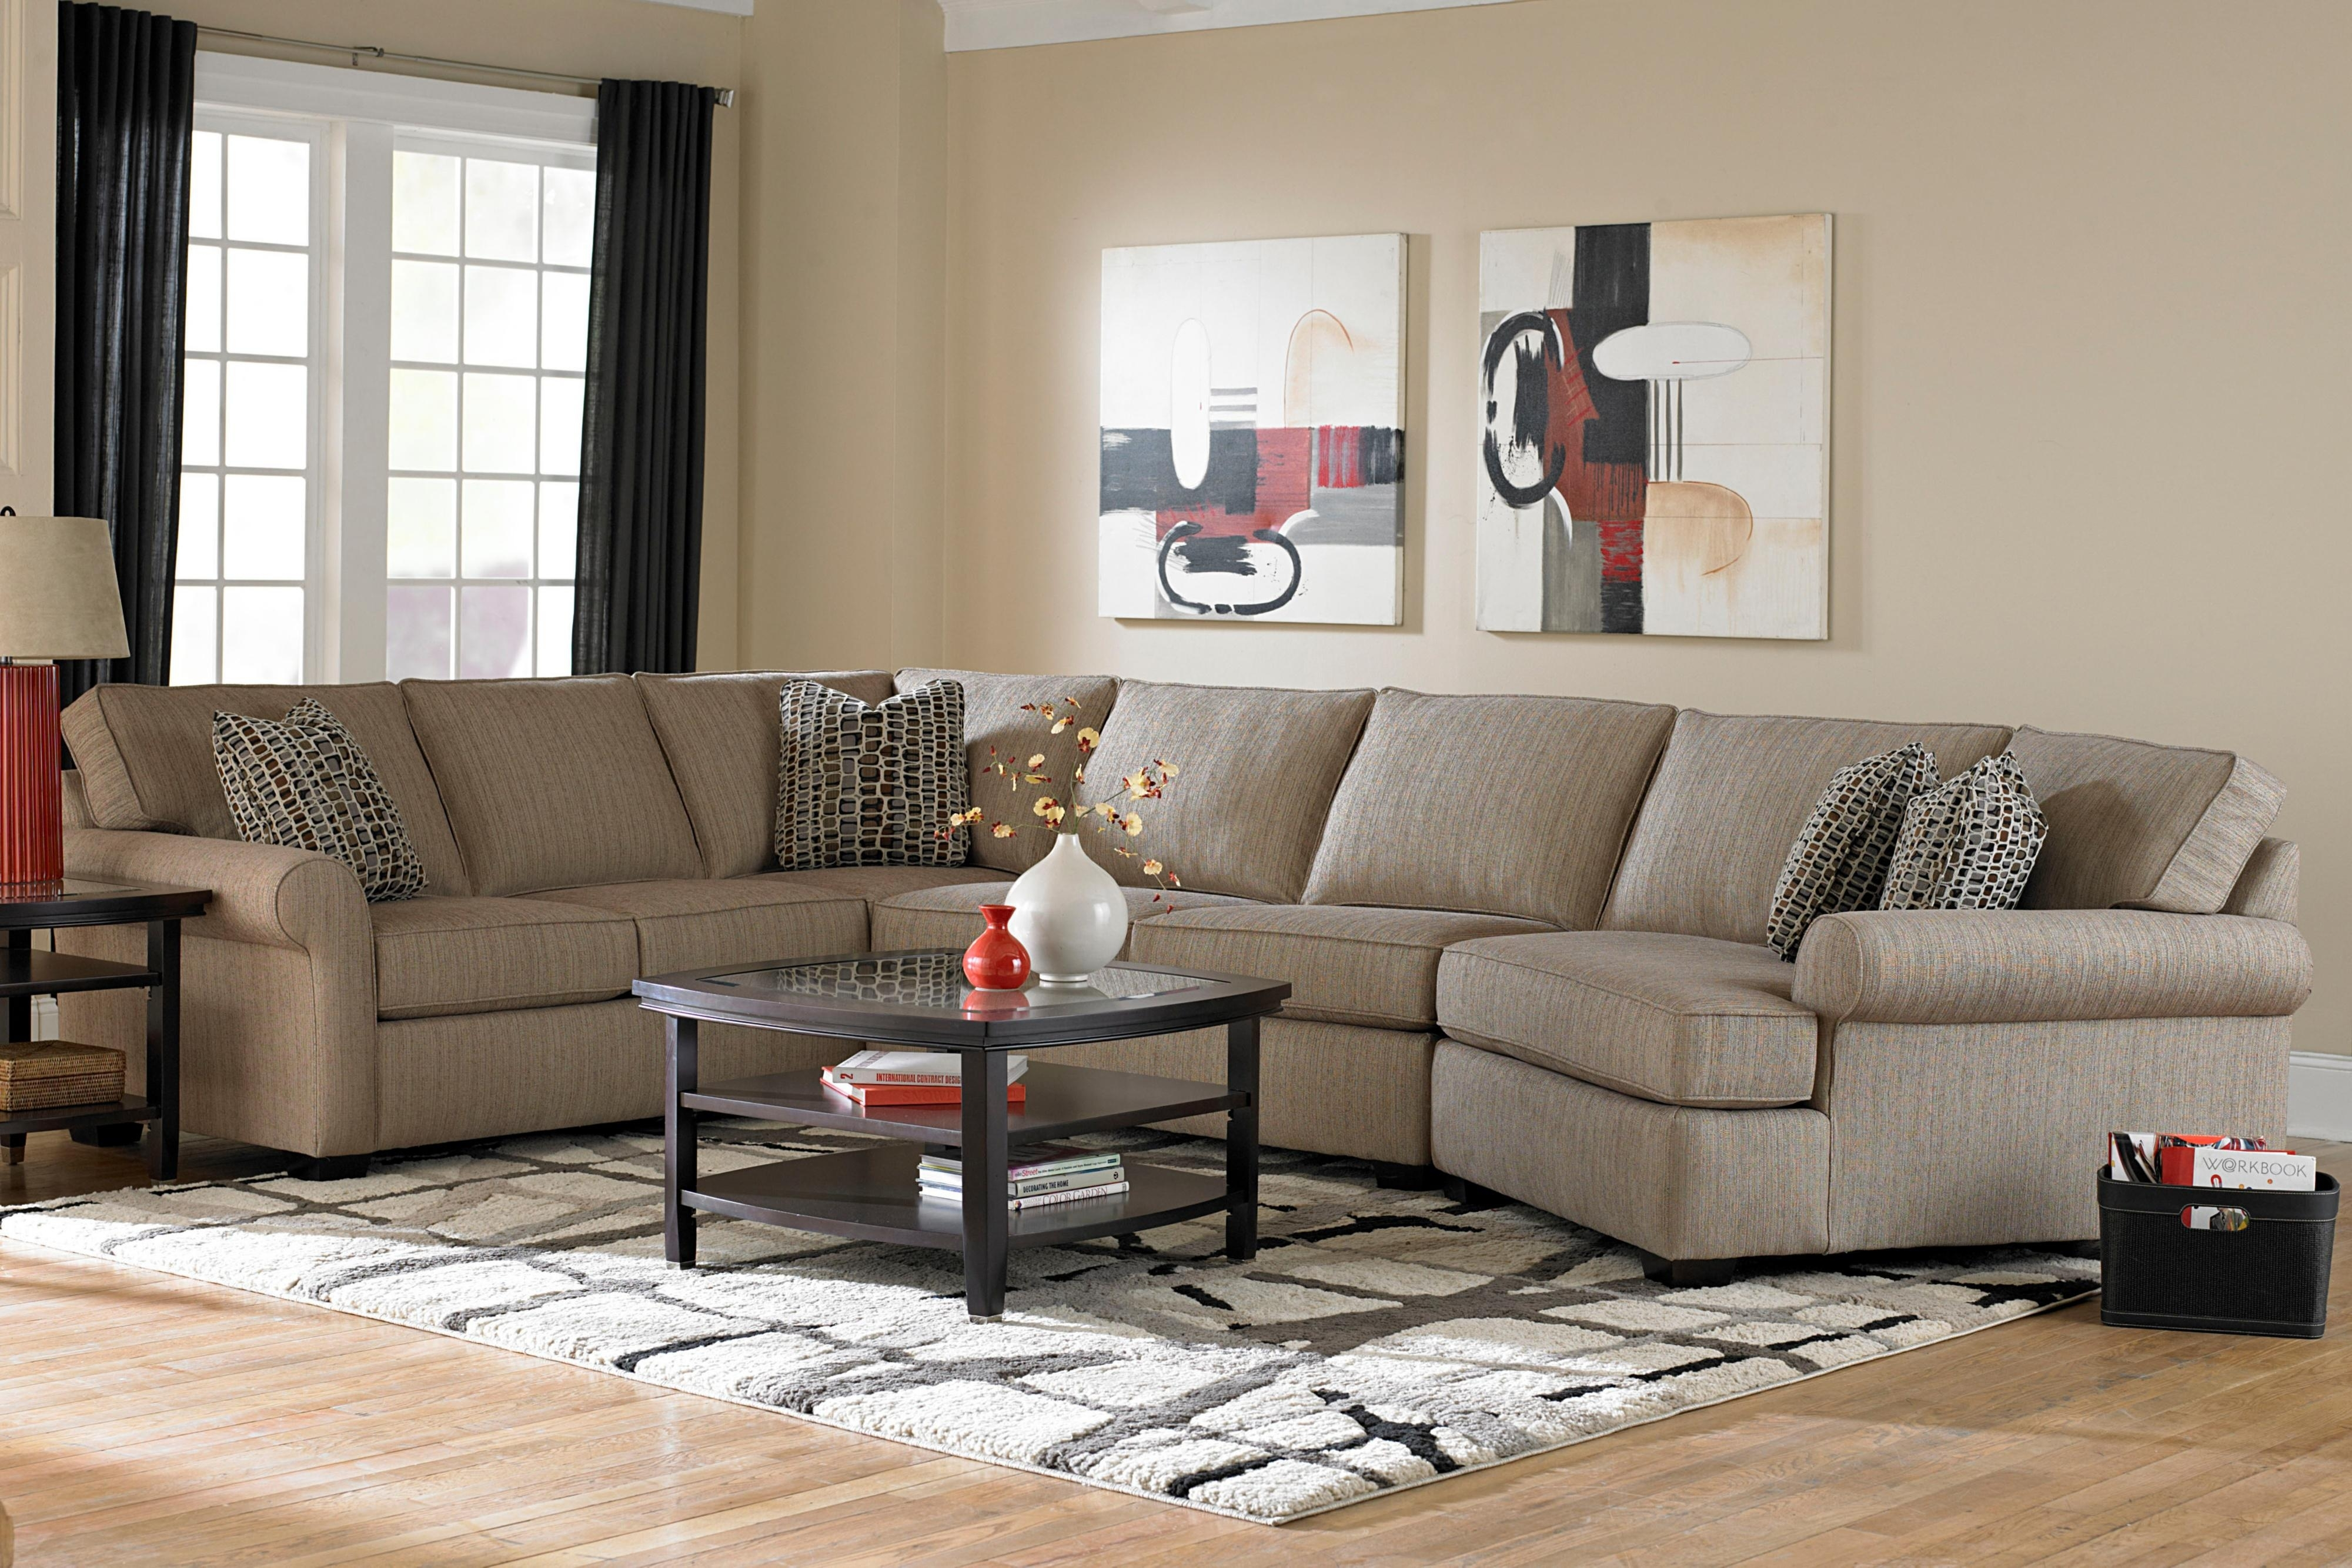 Broyhill Furniture Ethan Transitional Sectional Sofa With Left with Cohen Down 2 Piece Sectionals (Image 2 of 30)